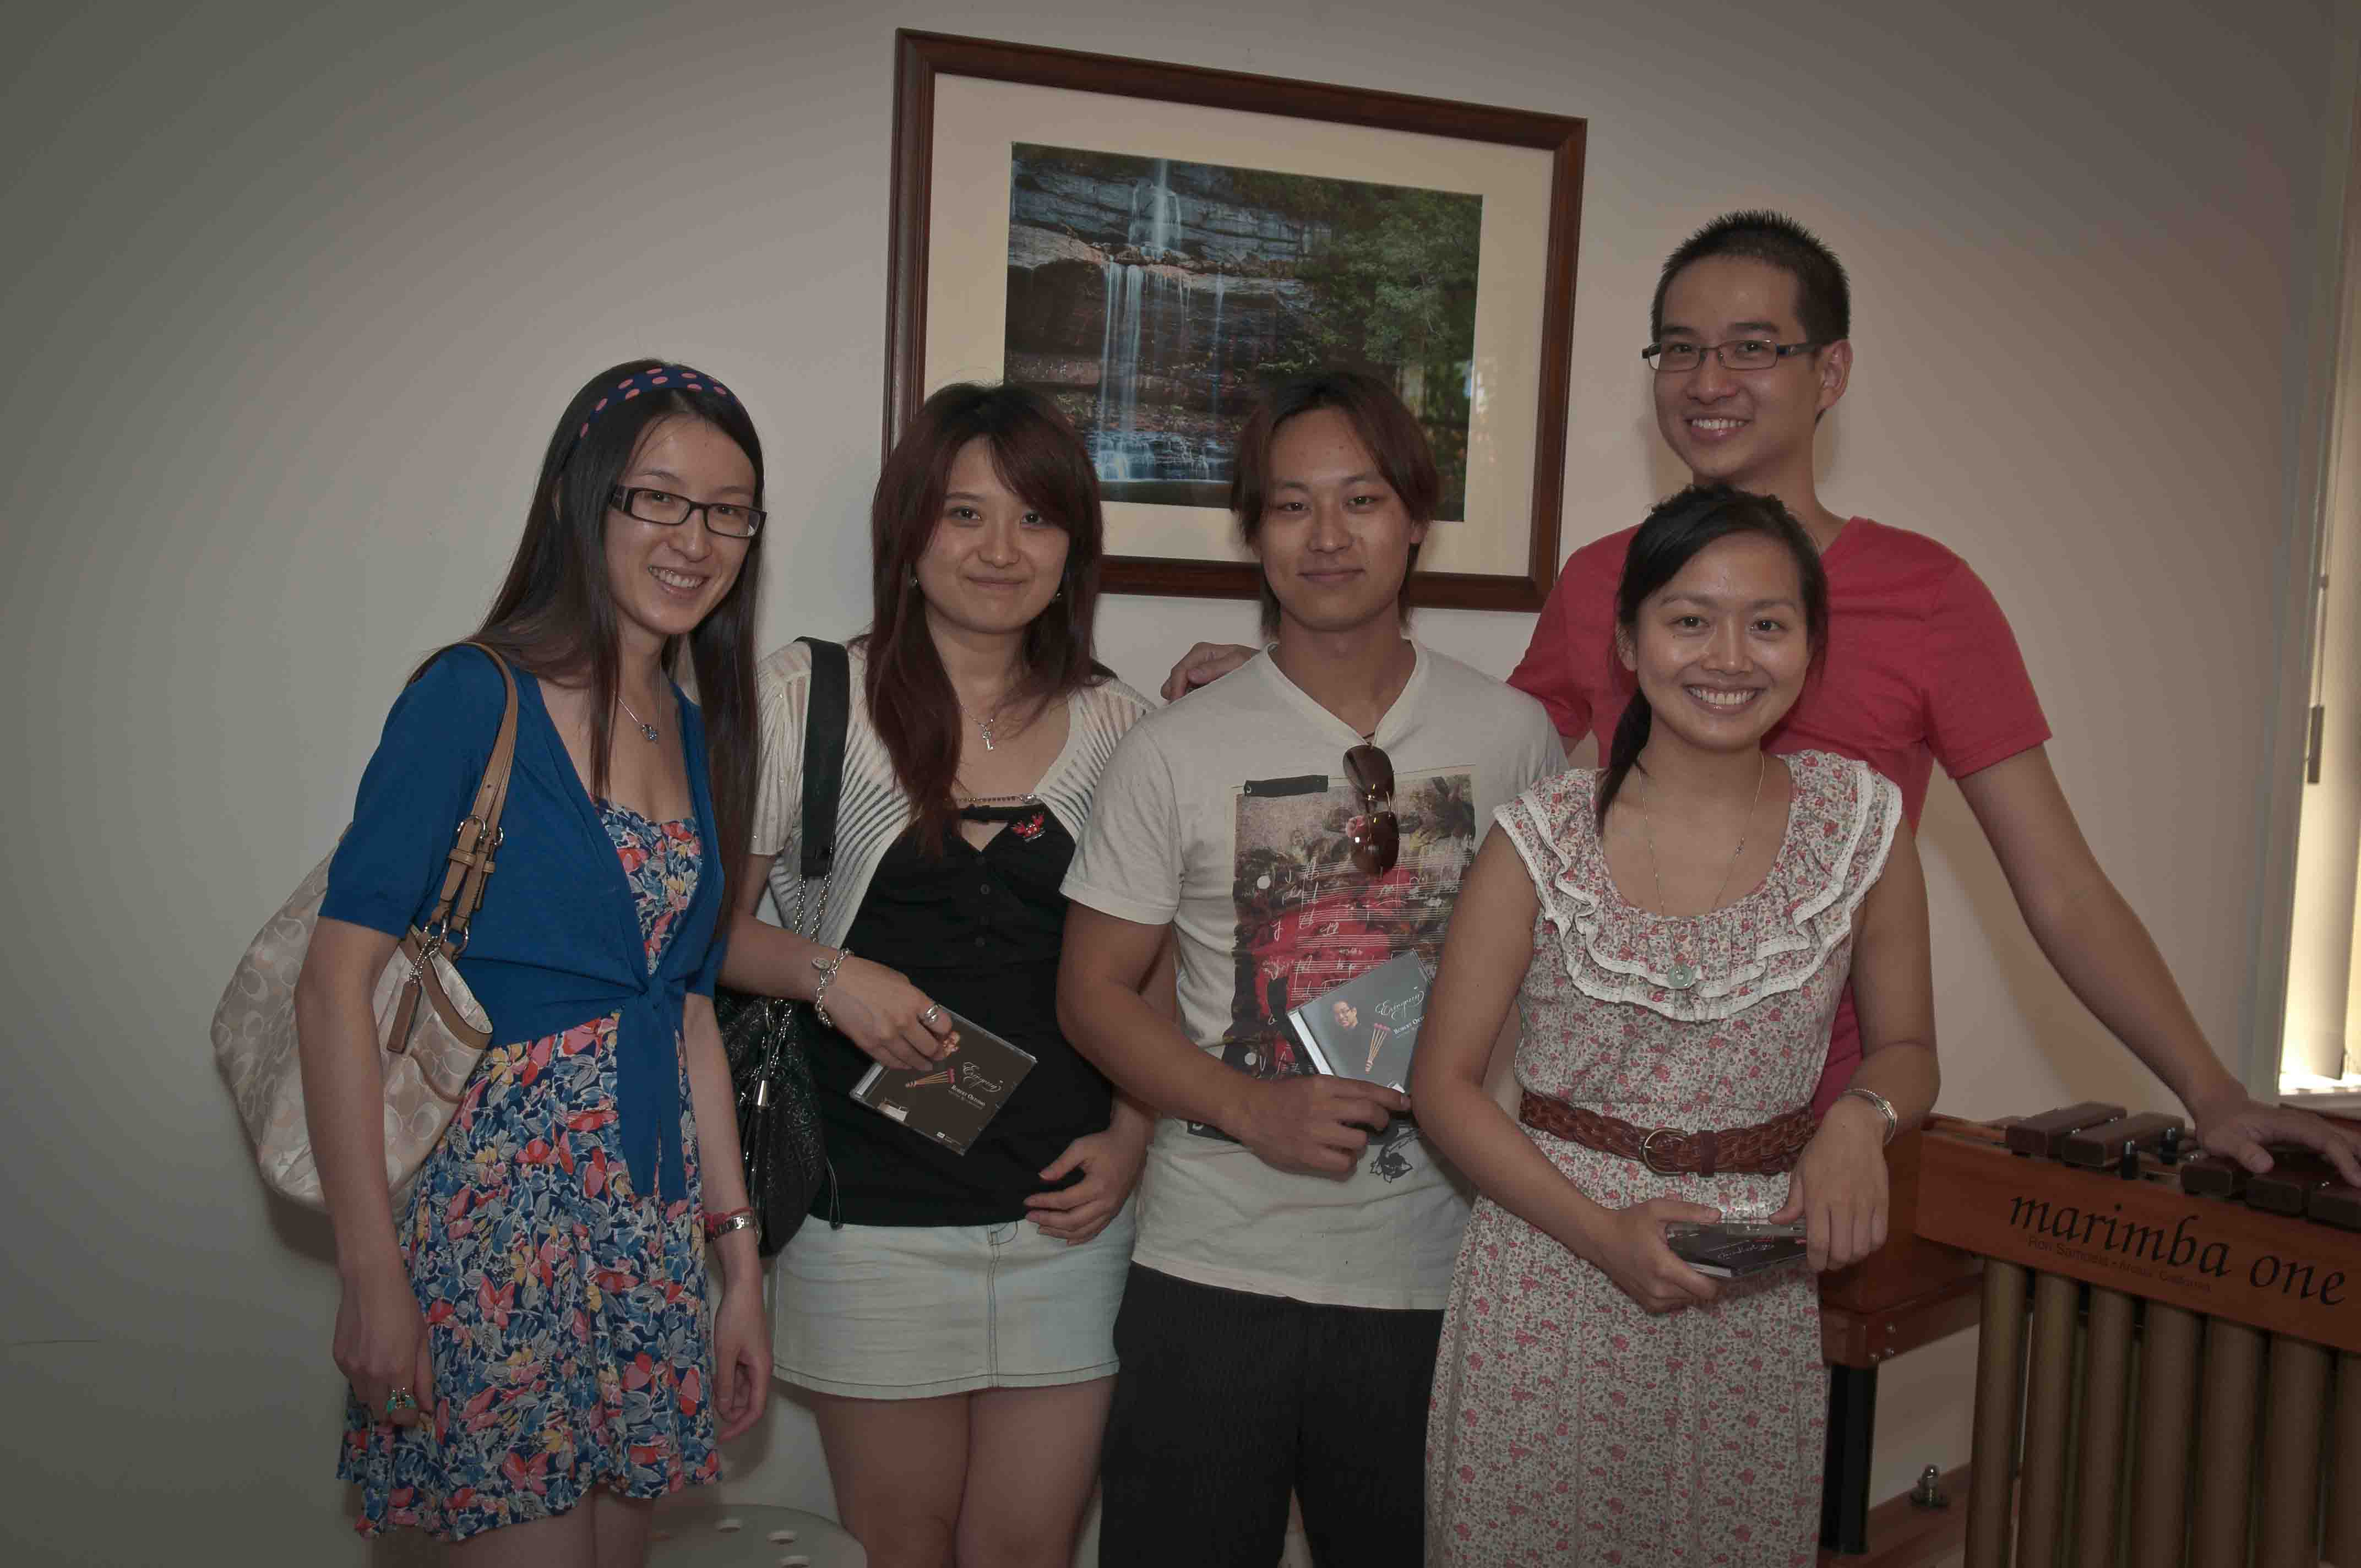 With high school friends. Photo by Anh Qui Le. Copyright © 2012 Anh Qui Le. All Rights Reserved.